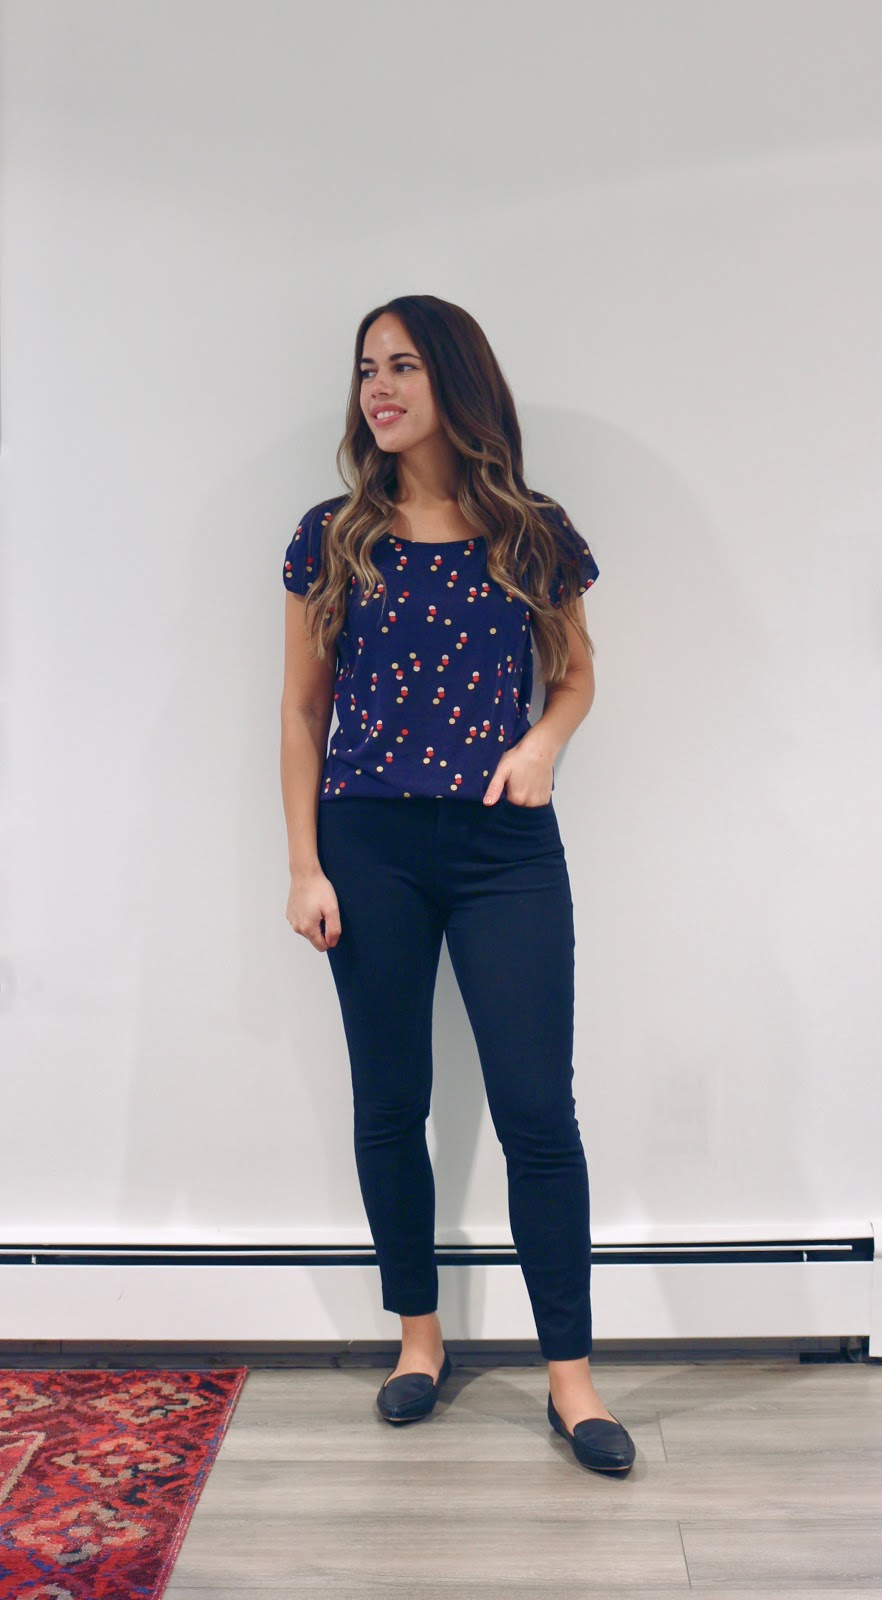 Jules in Flats -  Navy Dot Top (Business Casual Summer Workwear on a Budget)